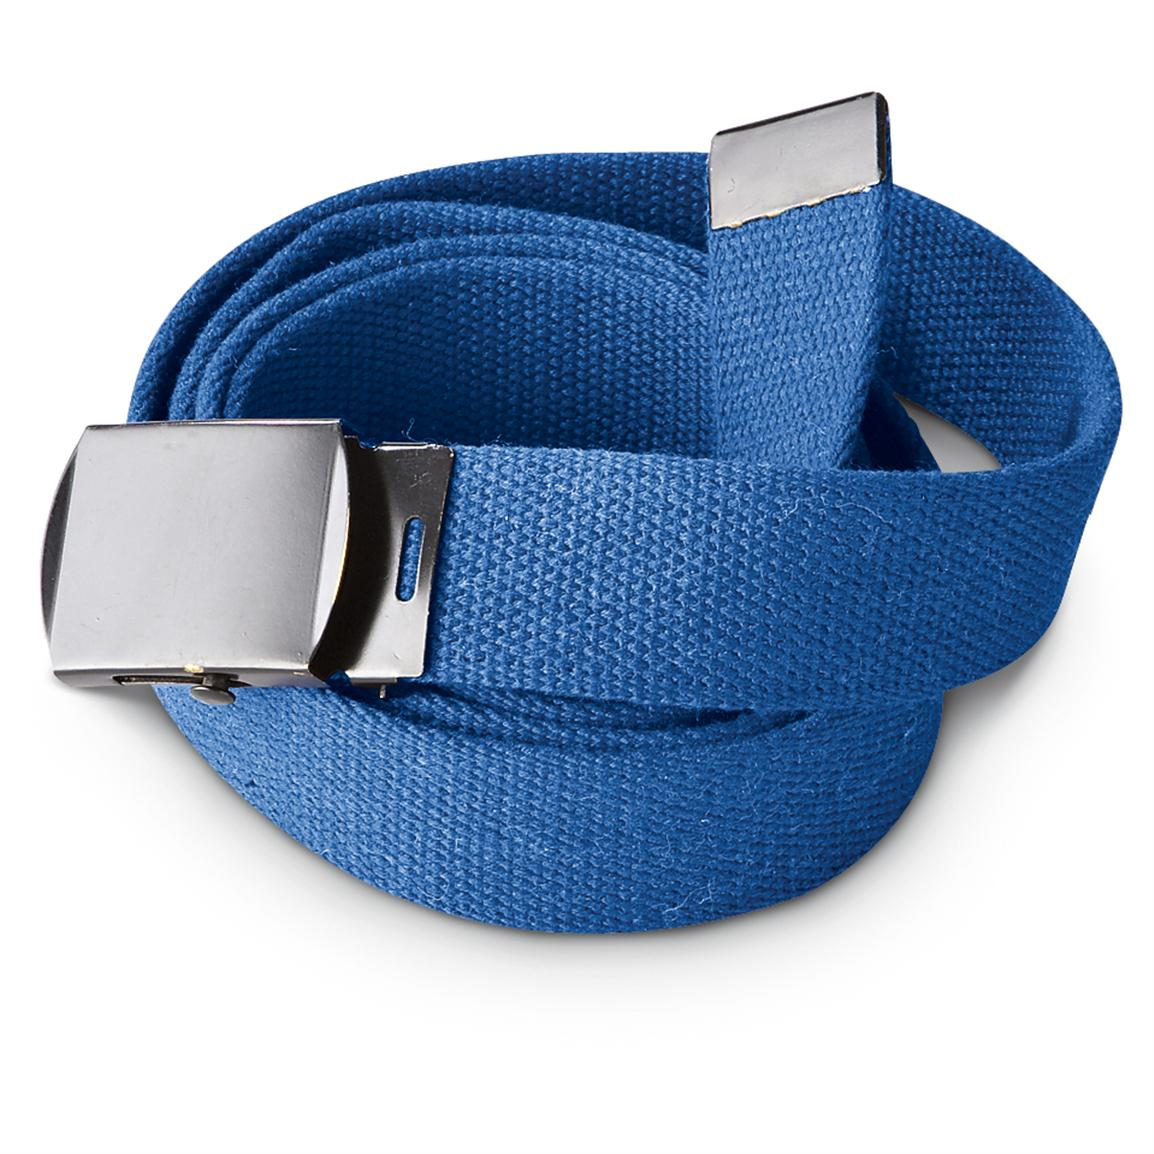 5-Pk. of New German Air Force Trouser Belts, Royal Blue